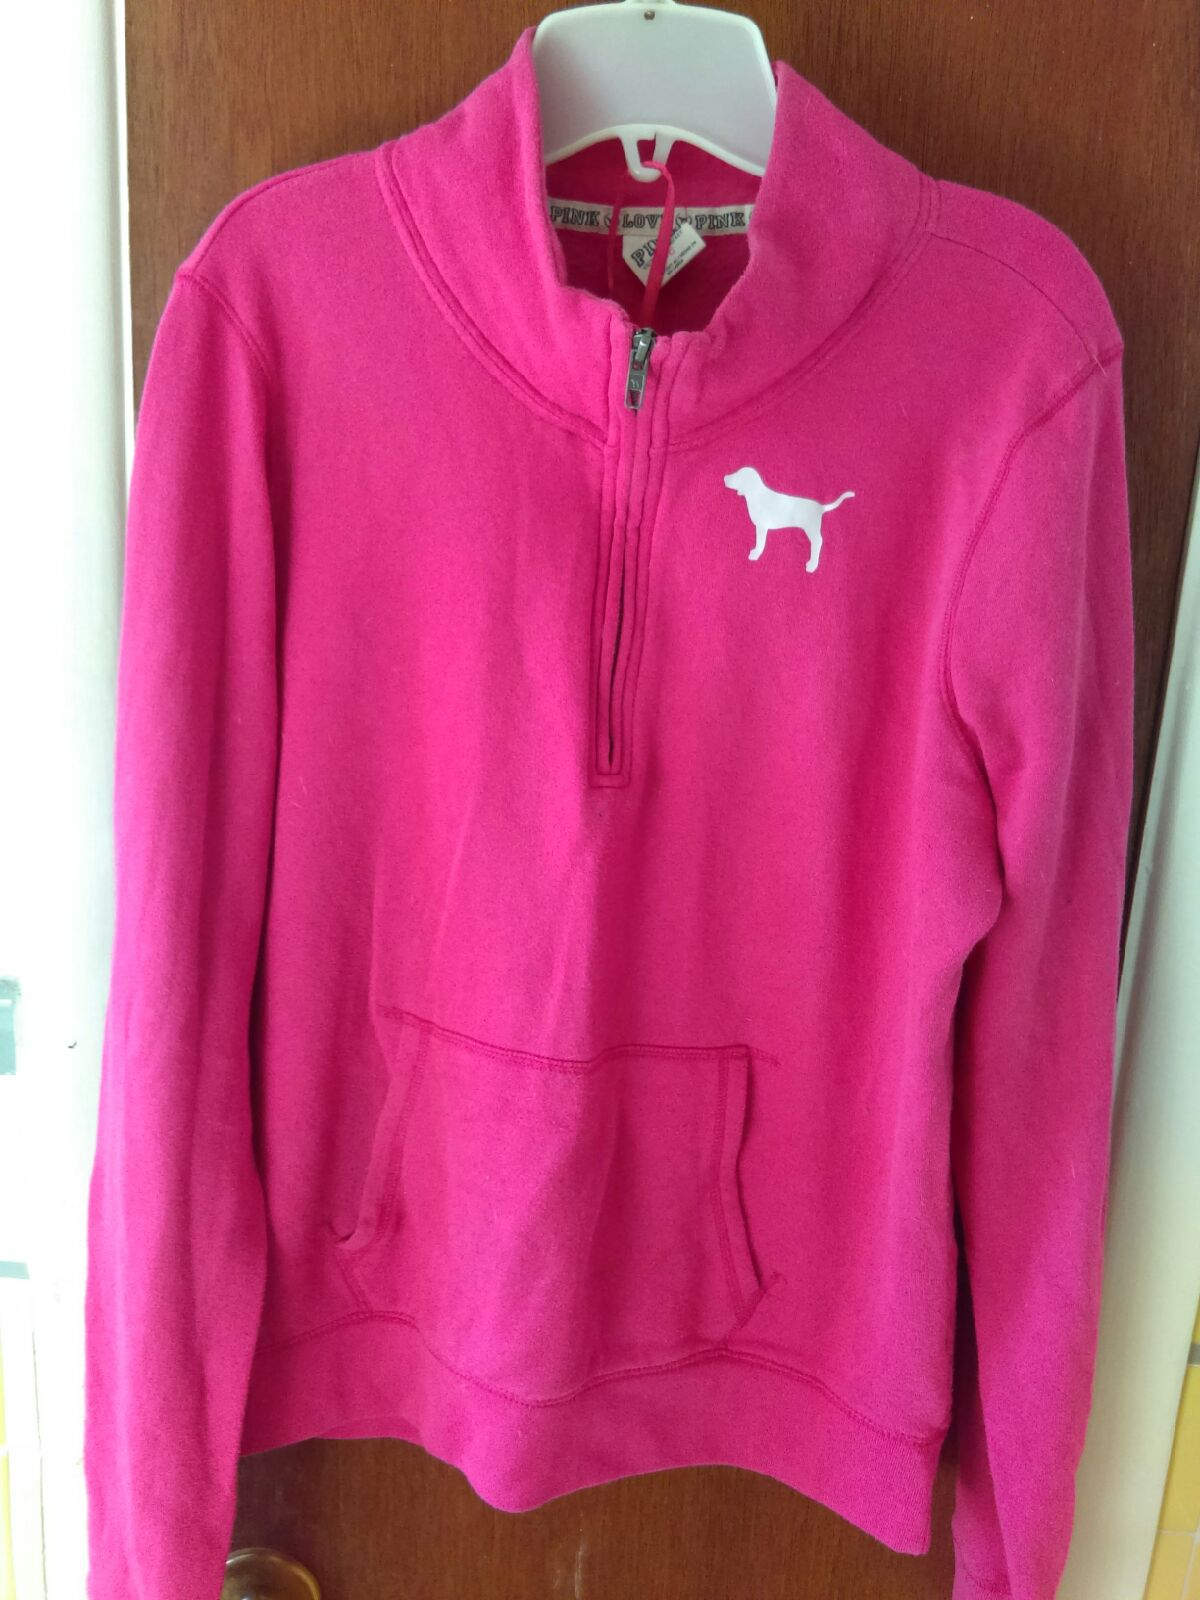 victoria's secret Love pink sweatshirt - Mercari: BUY & SELL ...